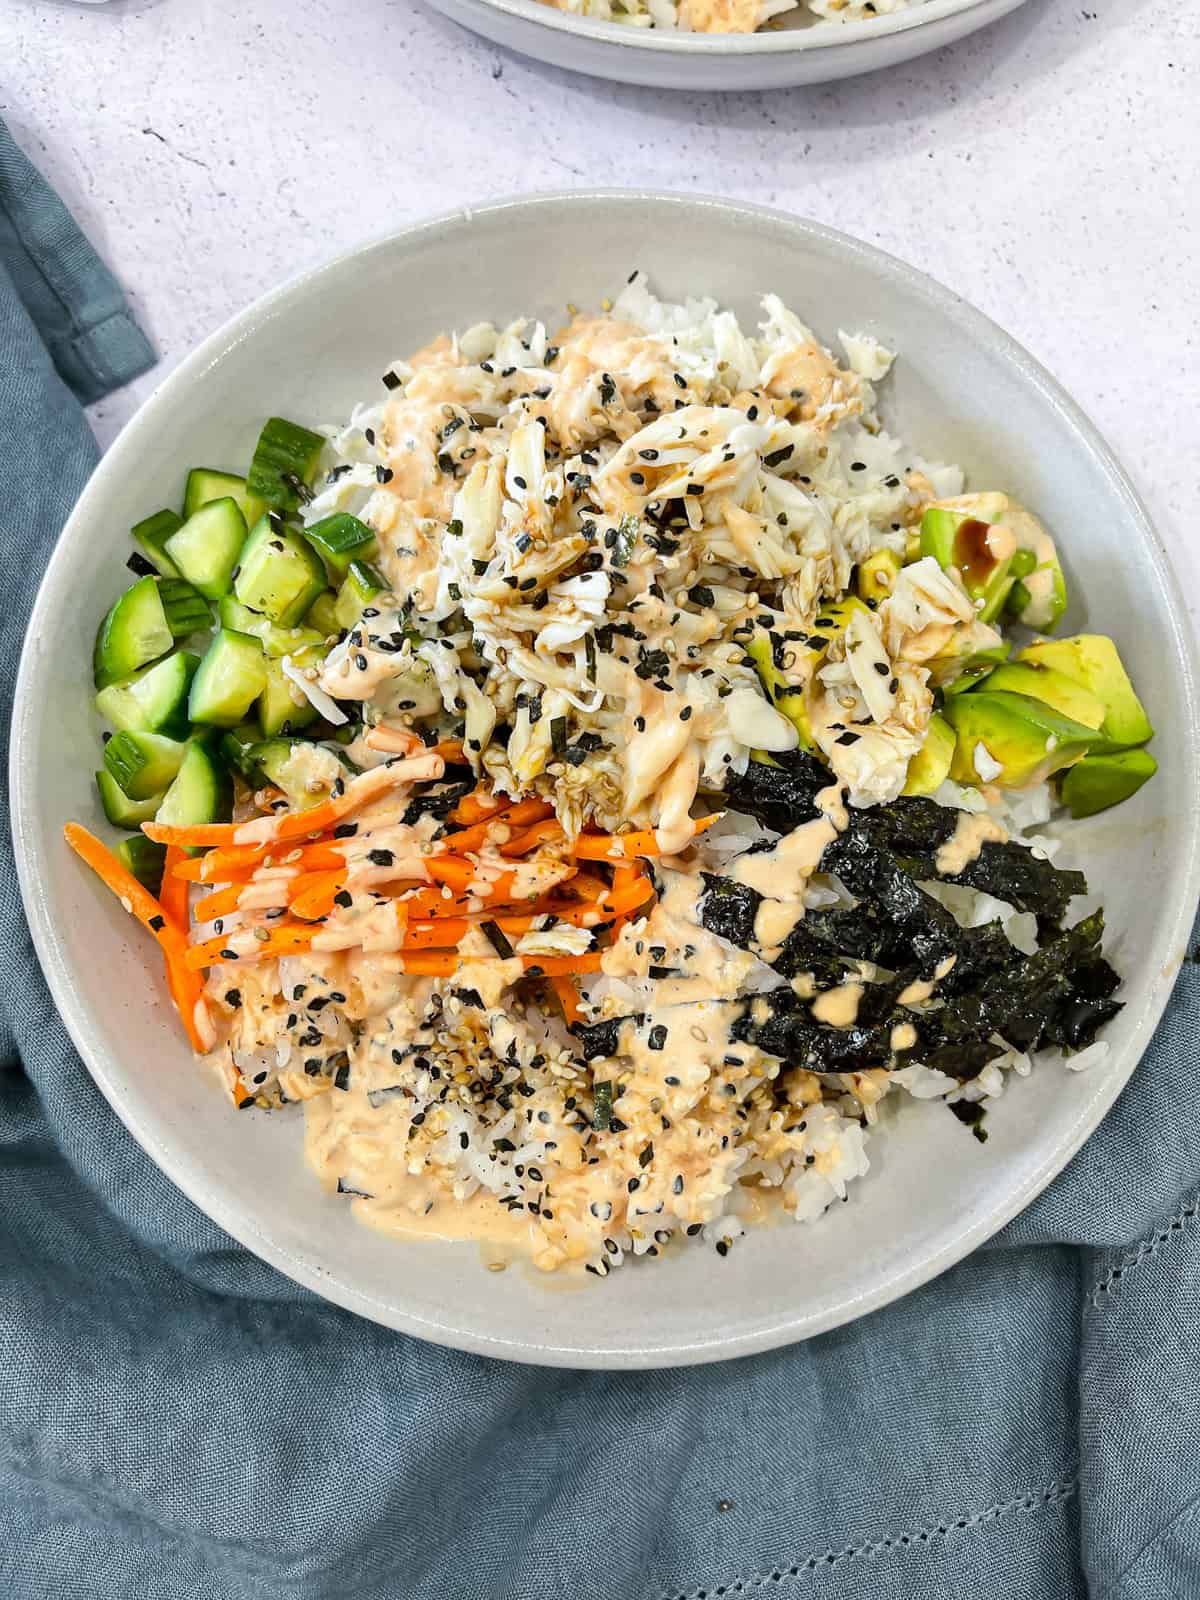 Ingredients for a california sushi roll all piled in a bowl - crab, rice, carrots, avocado, cucumber